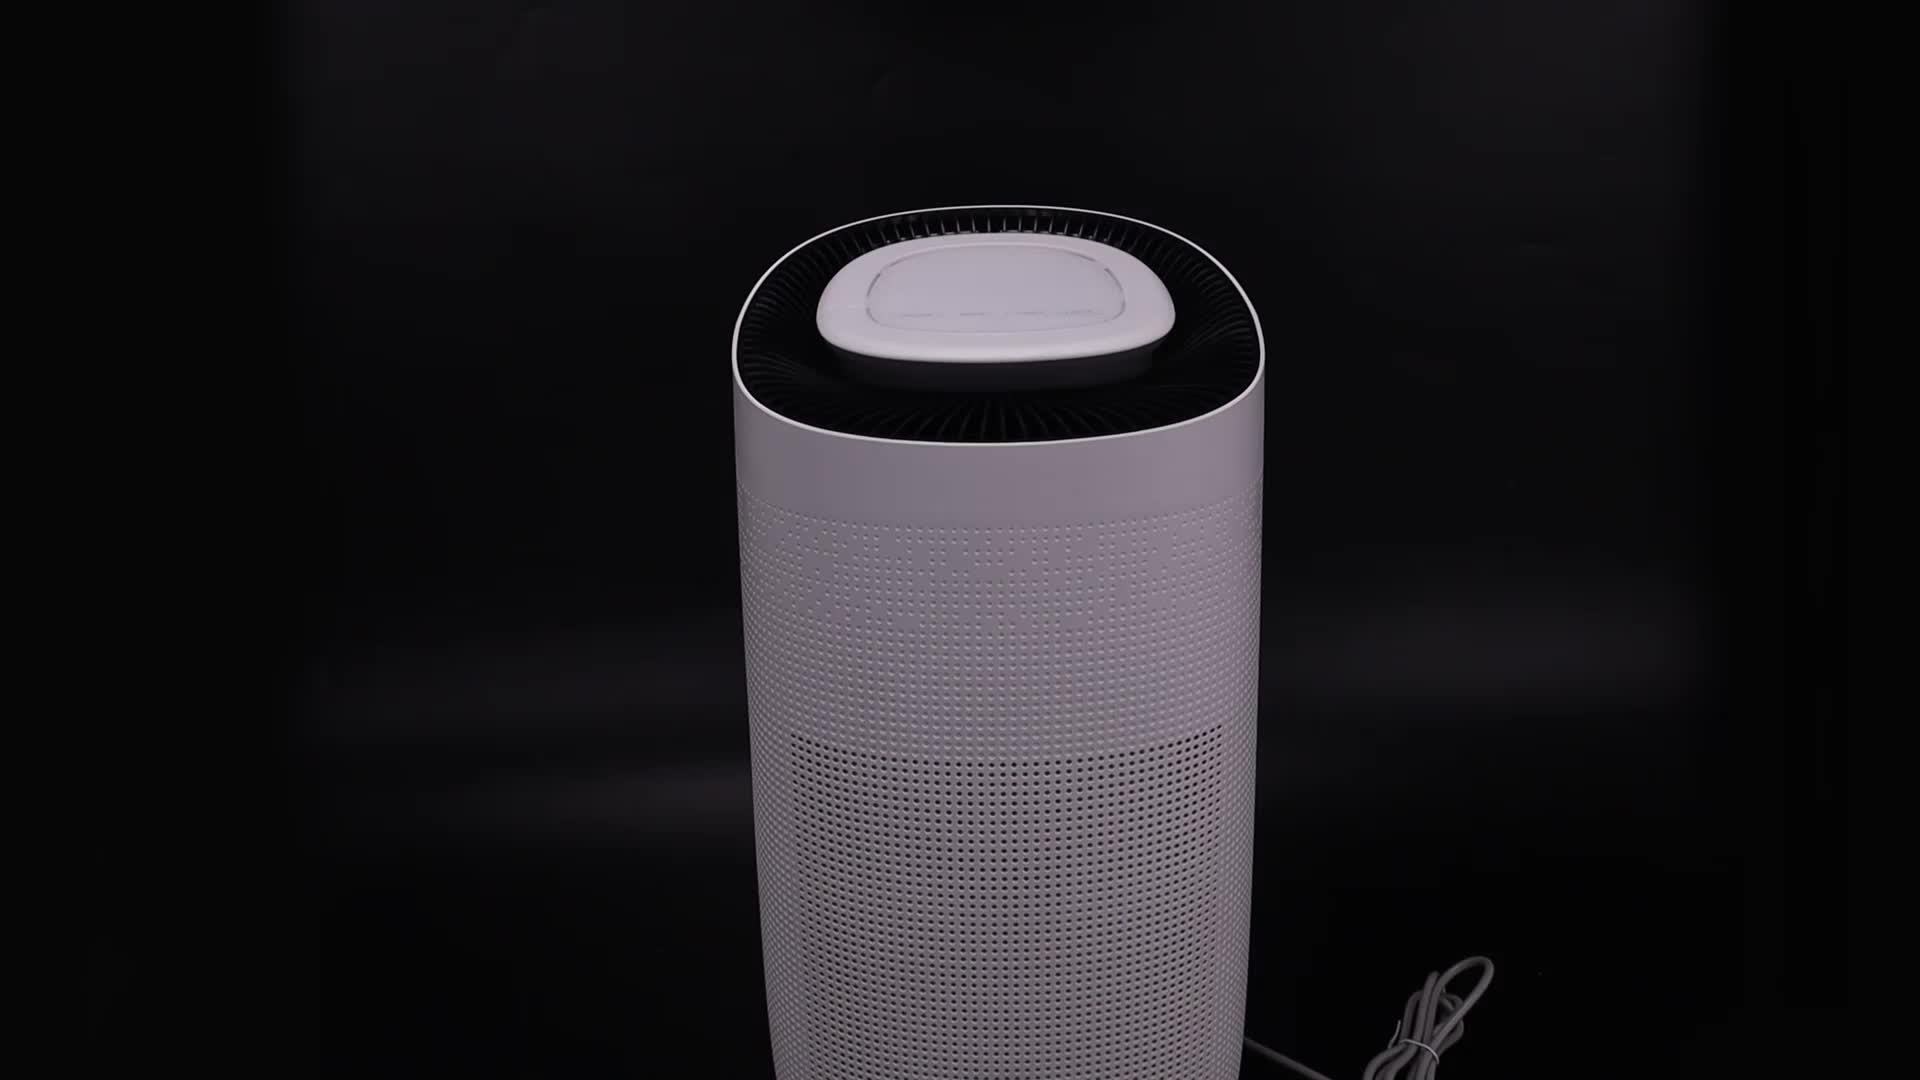 Oem Odm China Activated Carbon Hepa Filter Sensor Home Room Smart Portable Fresh Air Purifier